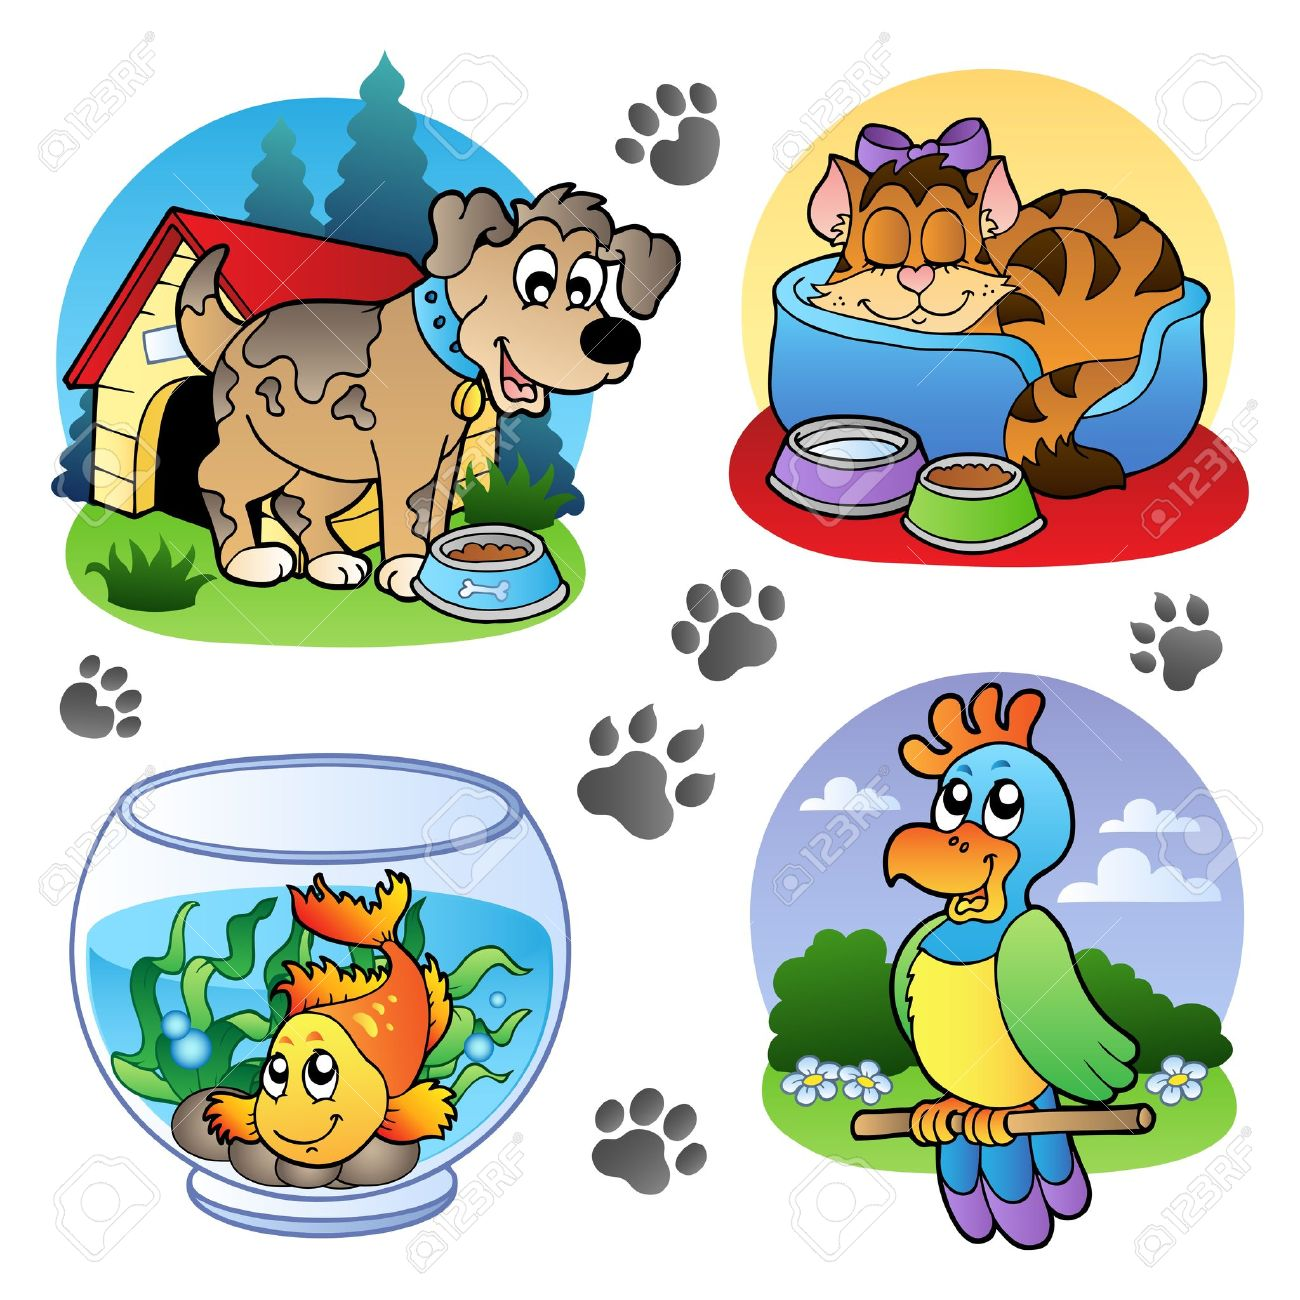 Pet animals clipart 9 » Clipart Station.